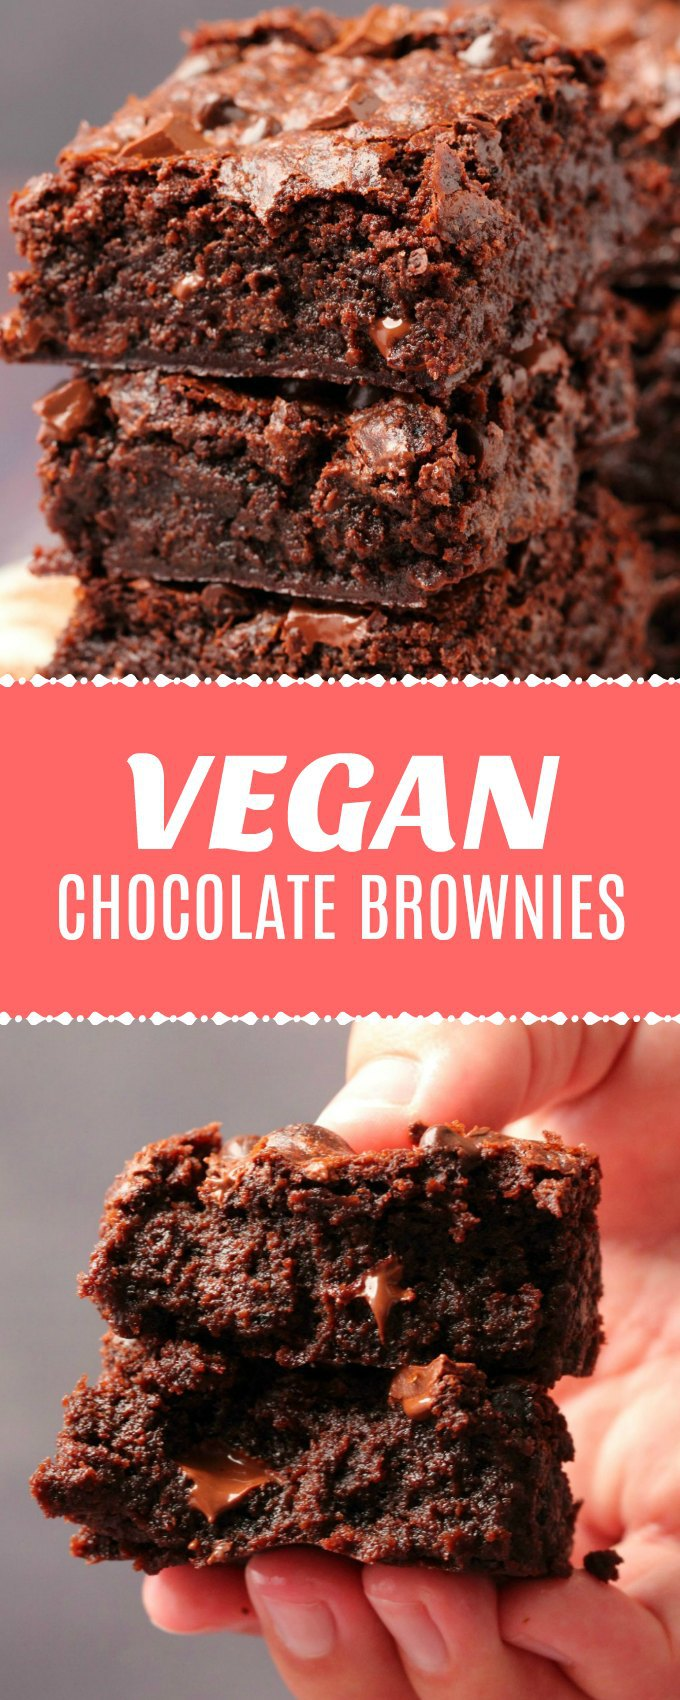 Vegan chocolate brownies that are ultra moist, mega chocolatey, dense, fudgy and everything a chocolate lover could dream of! #vegan #dairyfree | lovingitvegan.com